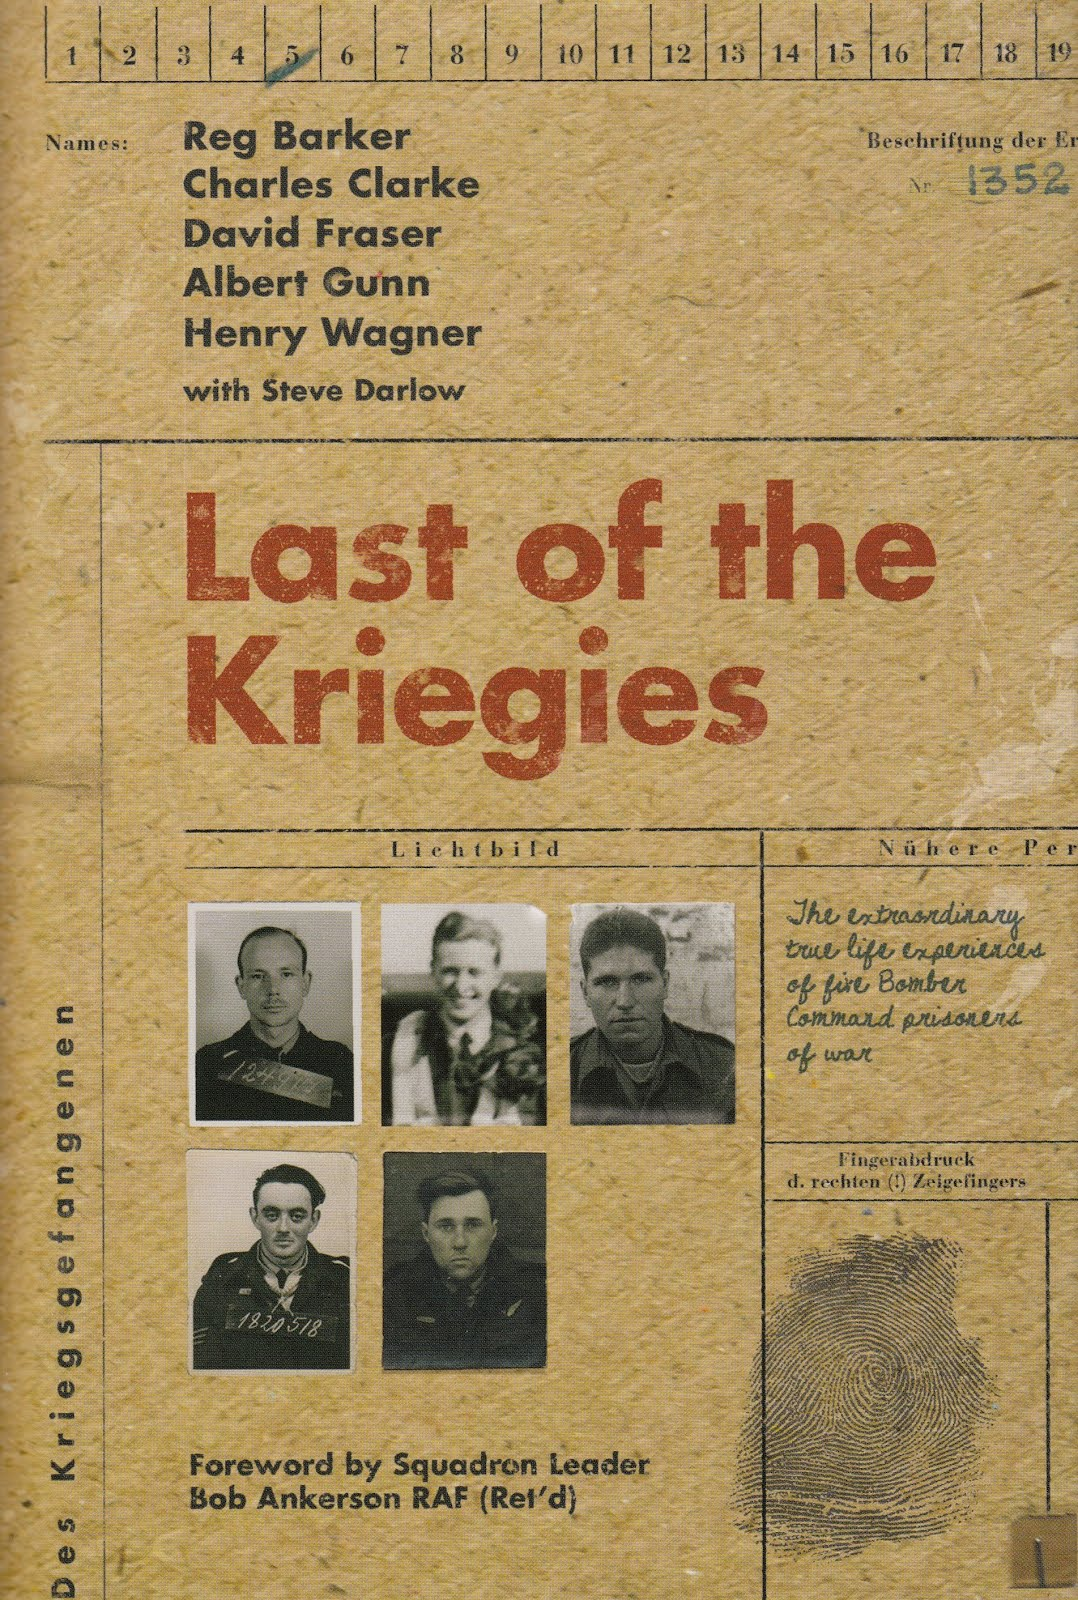 Last of the Kriegies